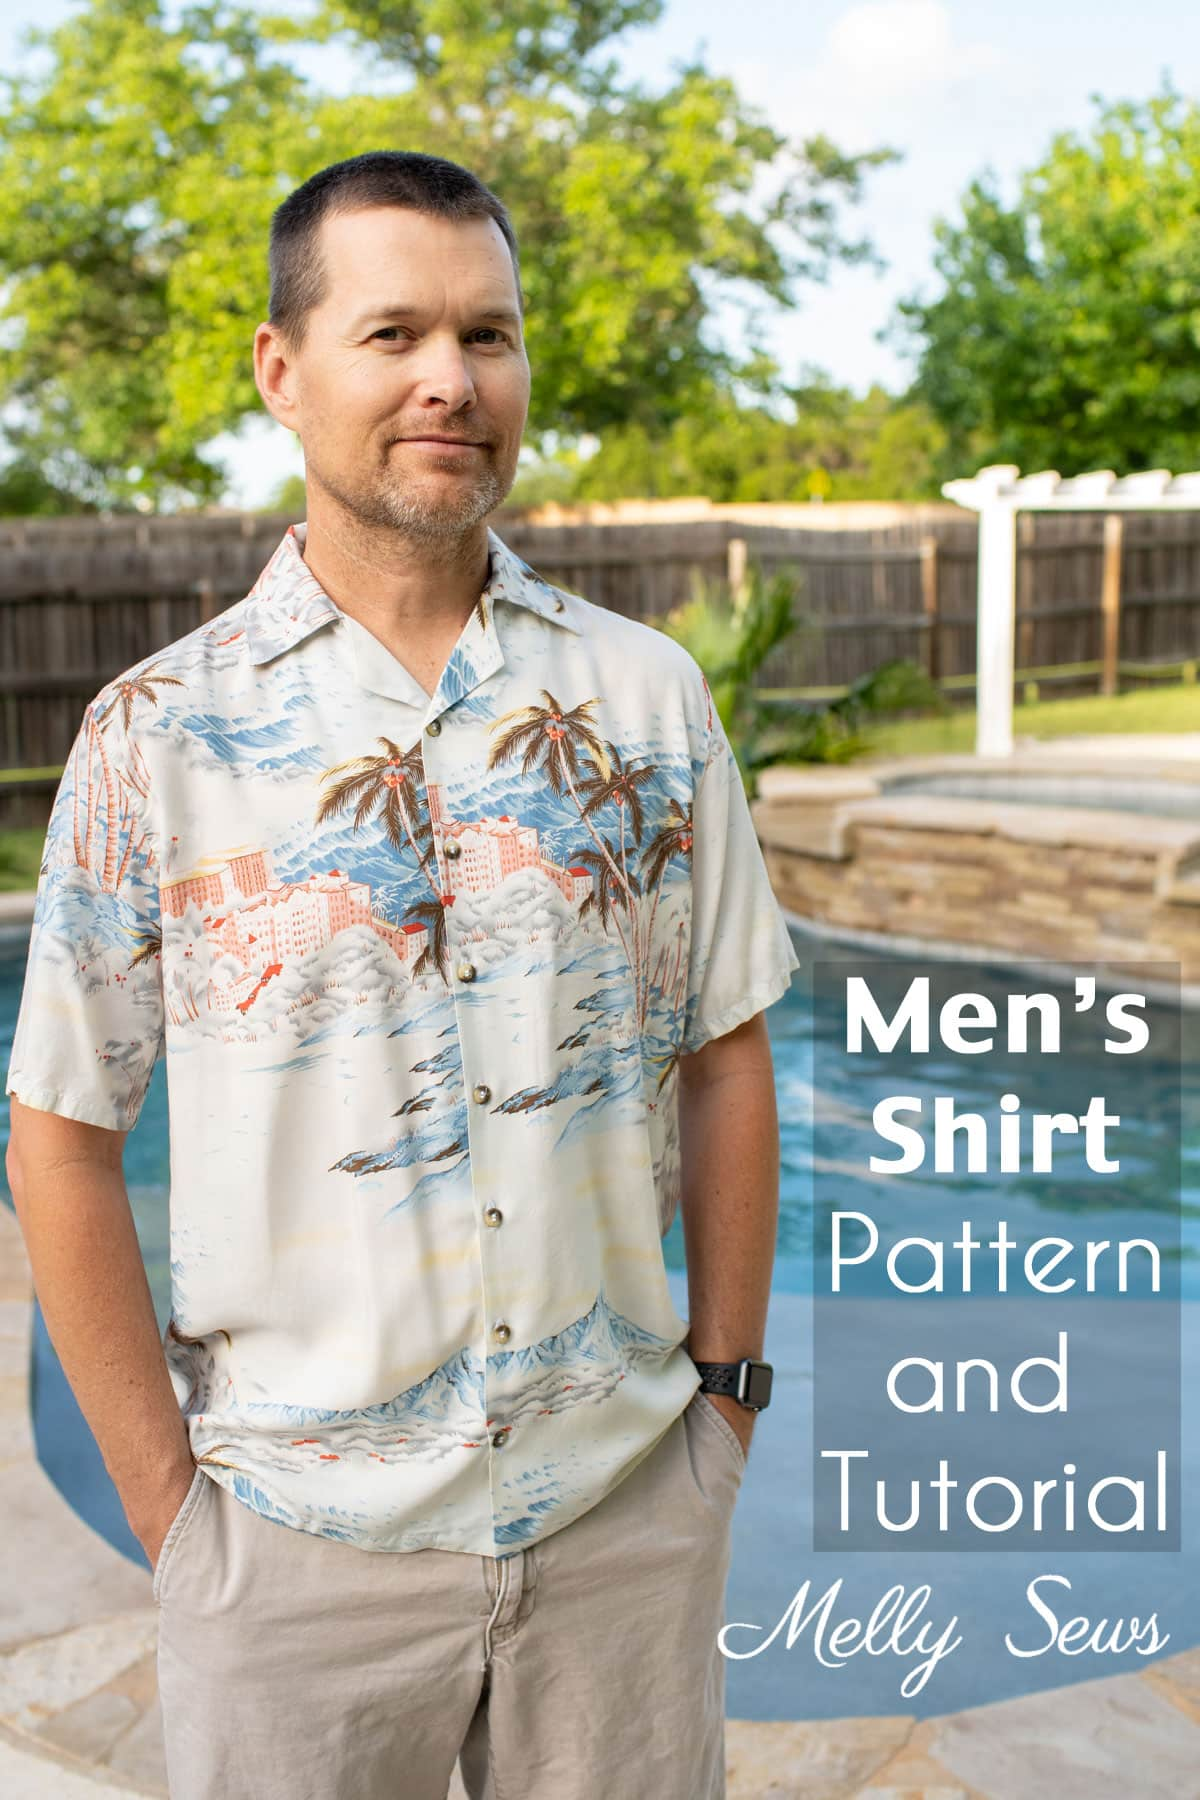 Men's Shirt Pattern and Tutorial - Melly Sews